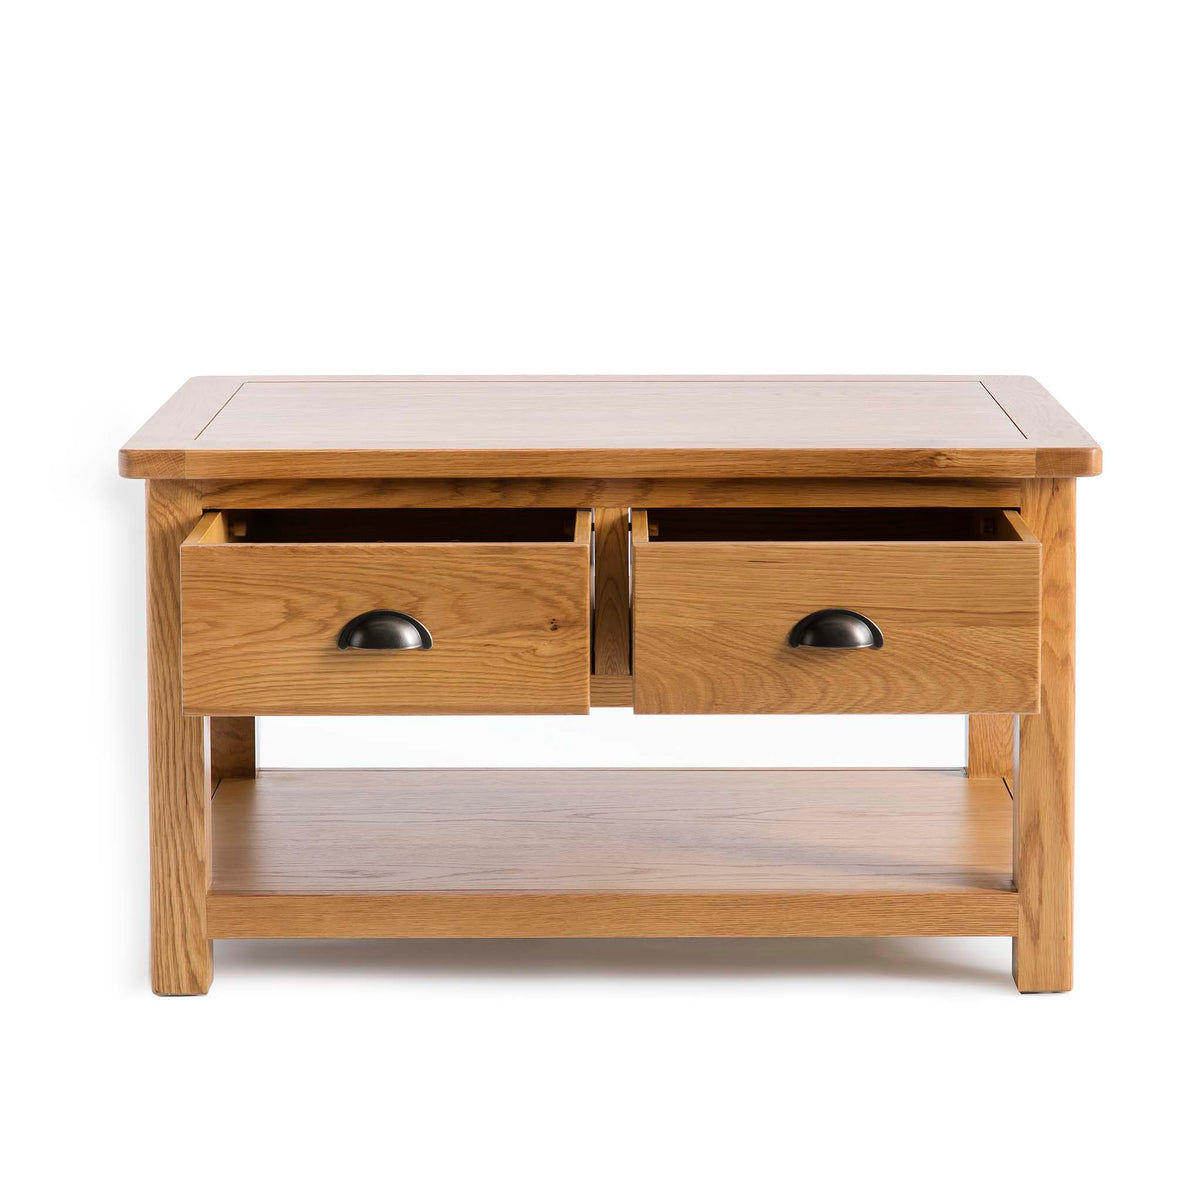 Top corner - Roseland Oak 2 Drawer Coffee Table